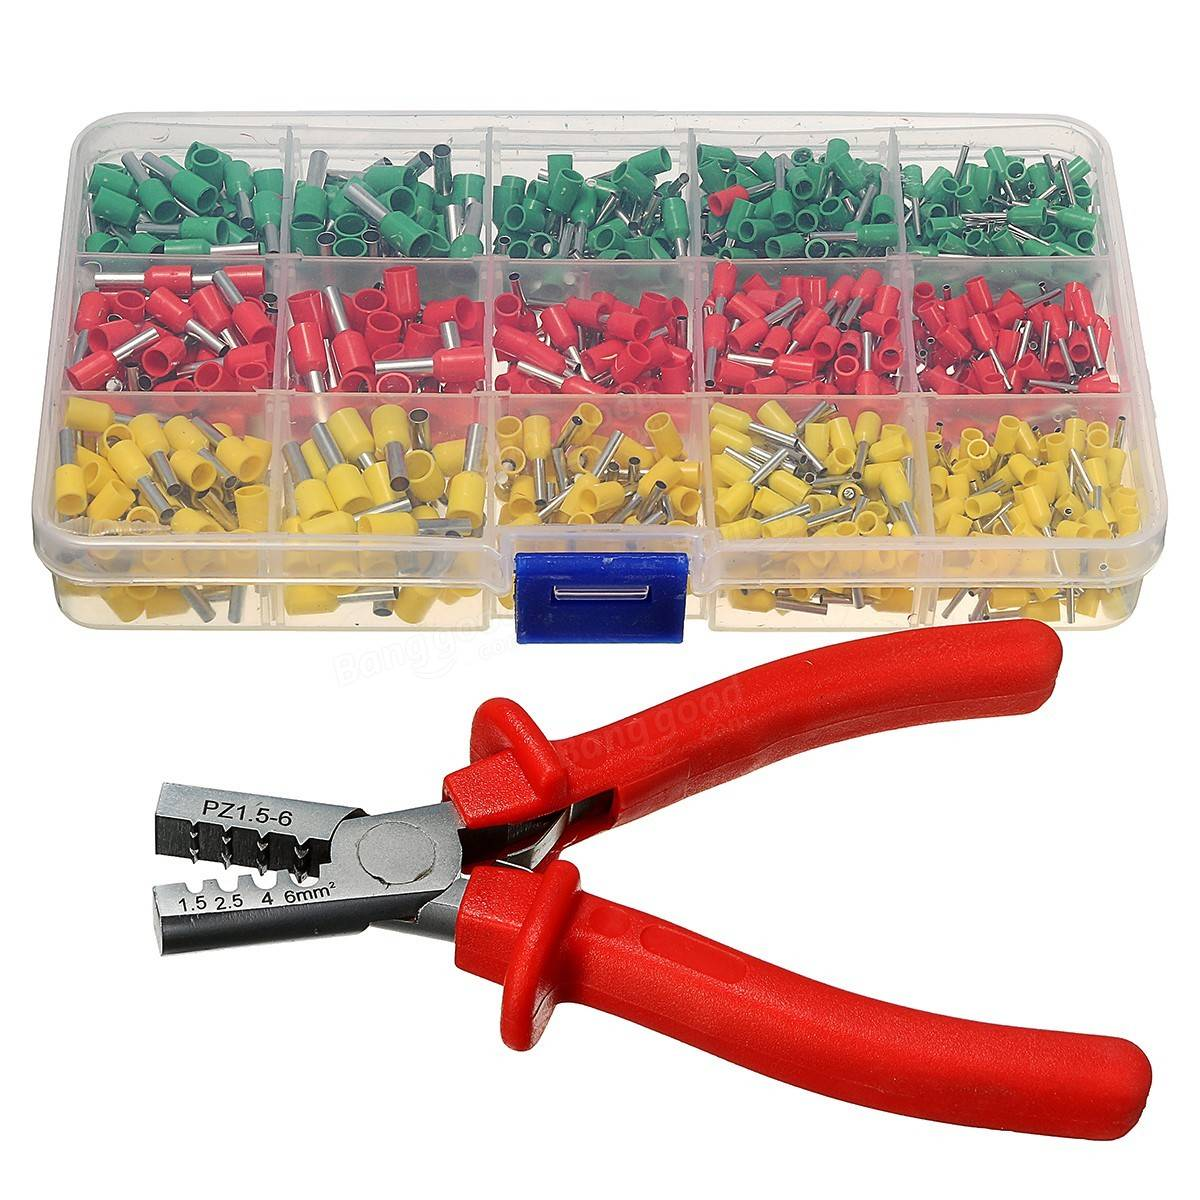 crimping tool crimper plier with 990pc tube end ferrule terminals assortment kit sale. Black Bedroom Furniture Sets. Home Design Ideas